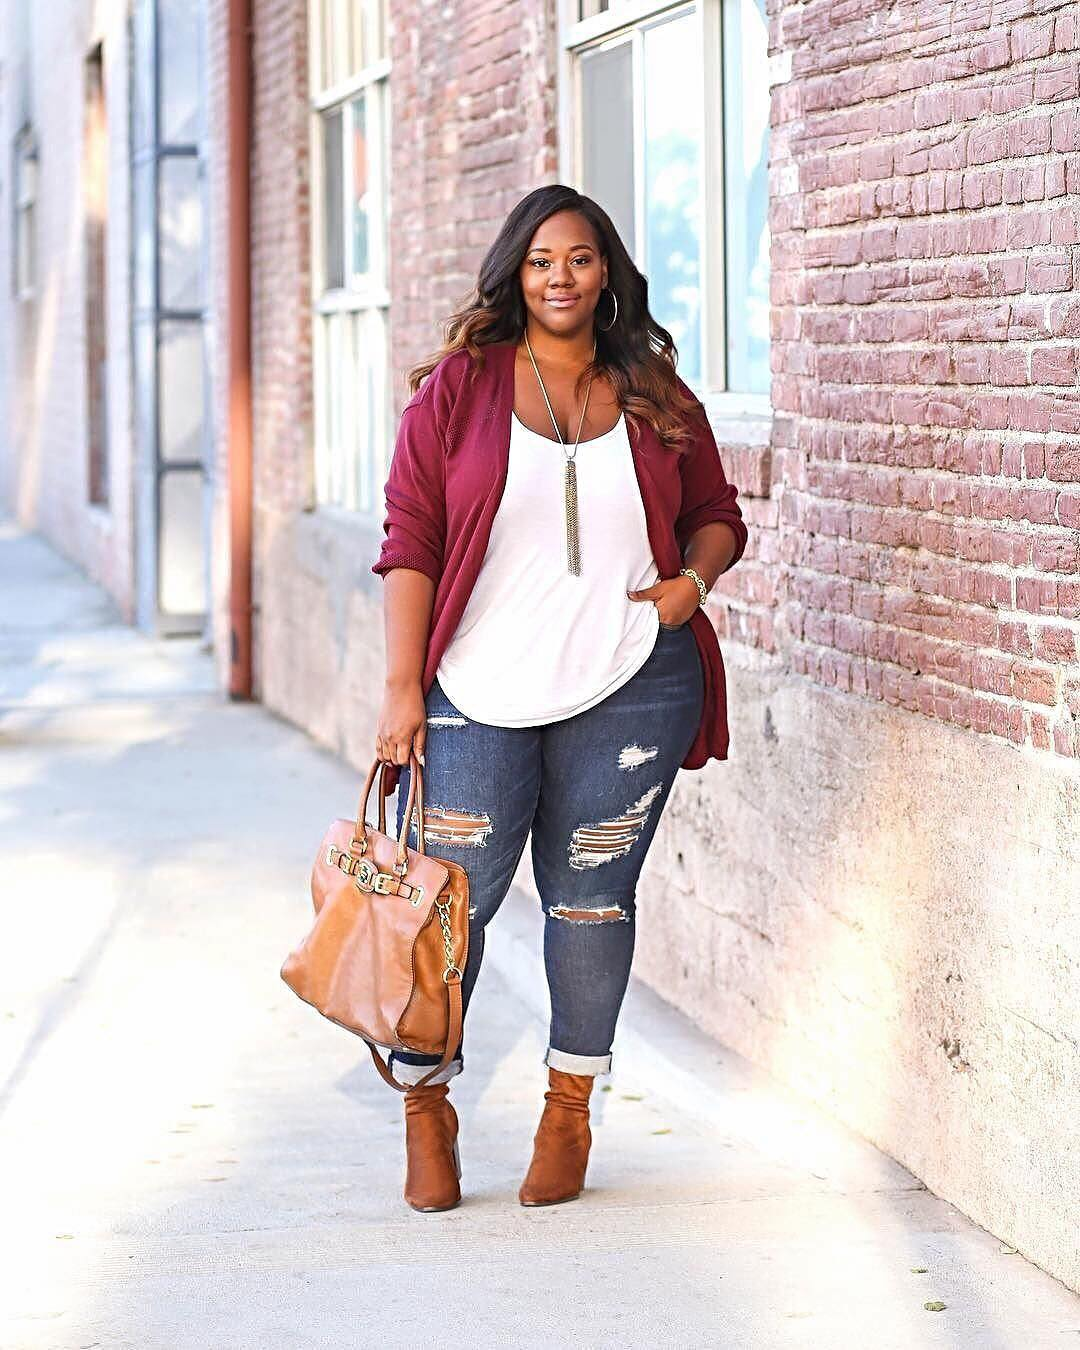 heading out on a first date here's a few plus size outfit